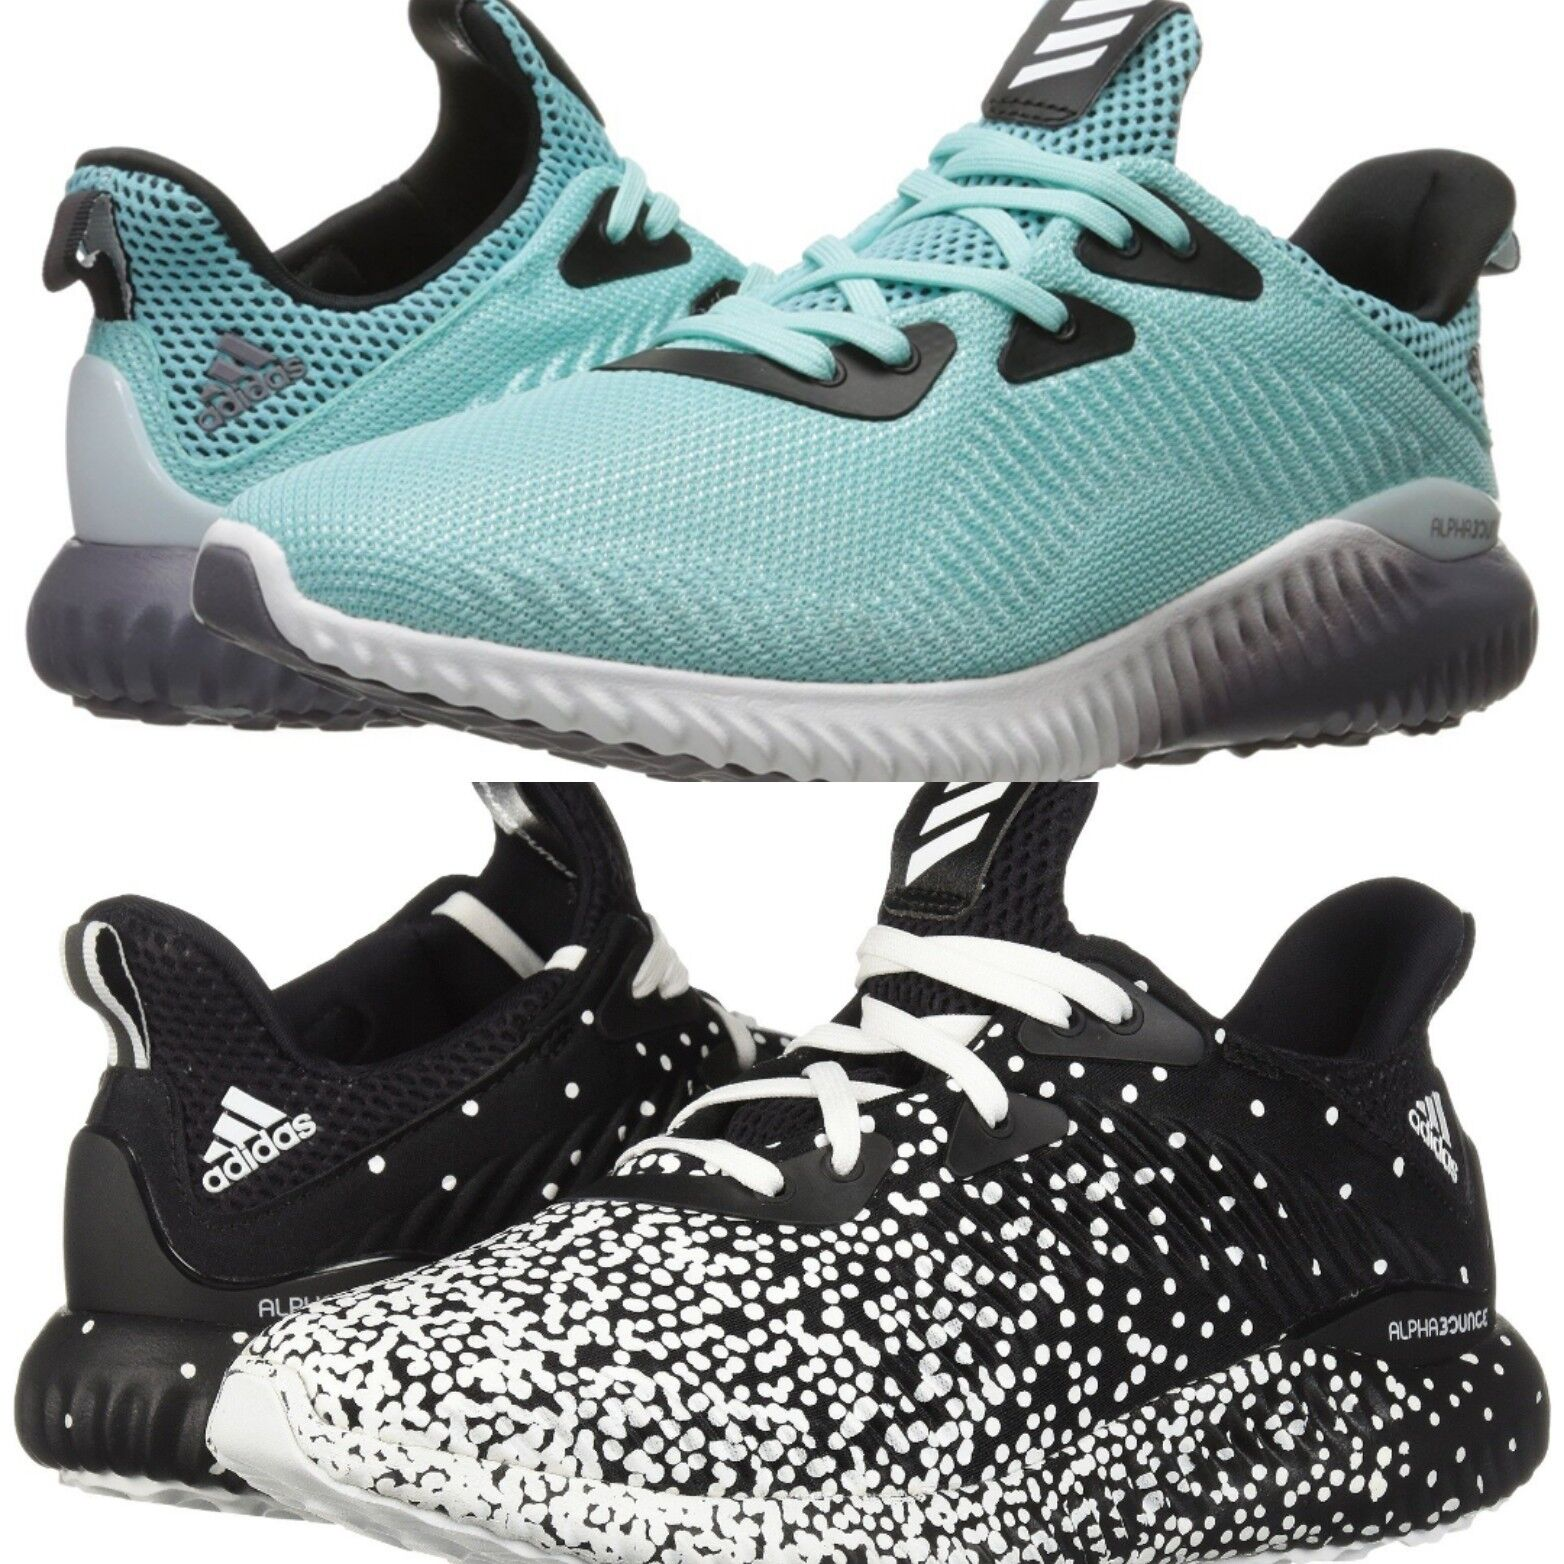 adidas Women's Alphabounce 1 W Run 2-COLORS (Women's Size 12) NWT NIB MSRP $110